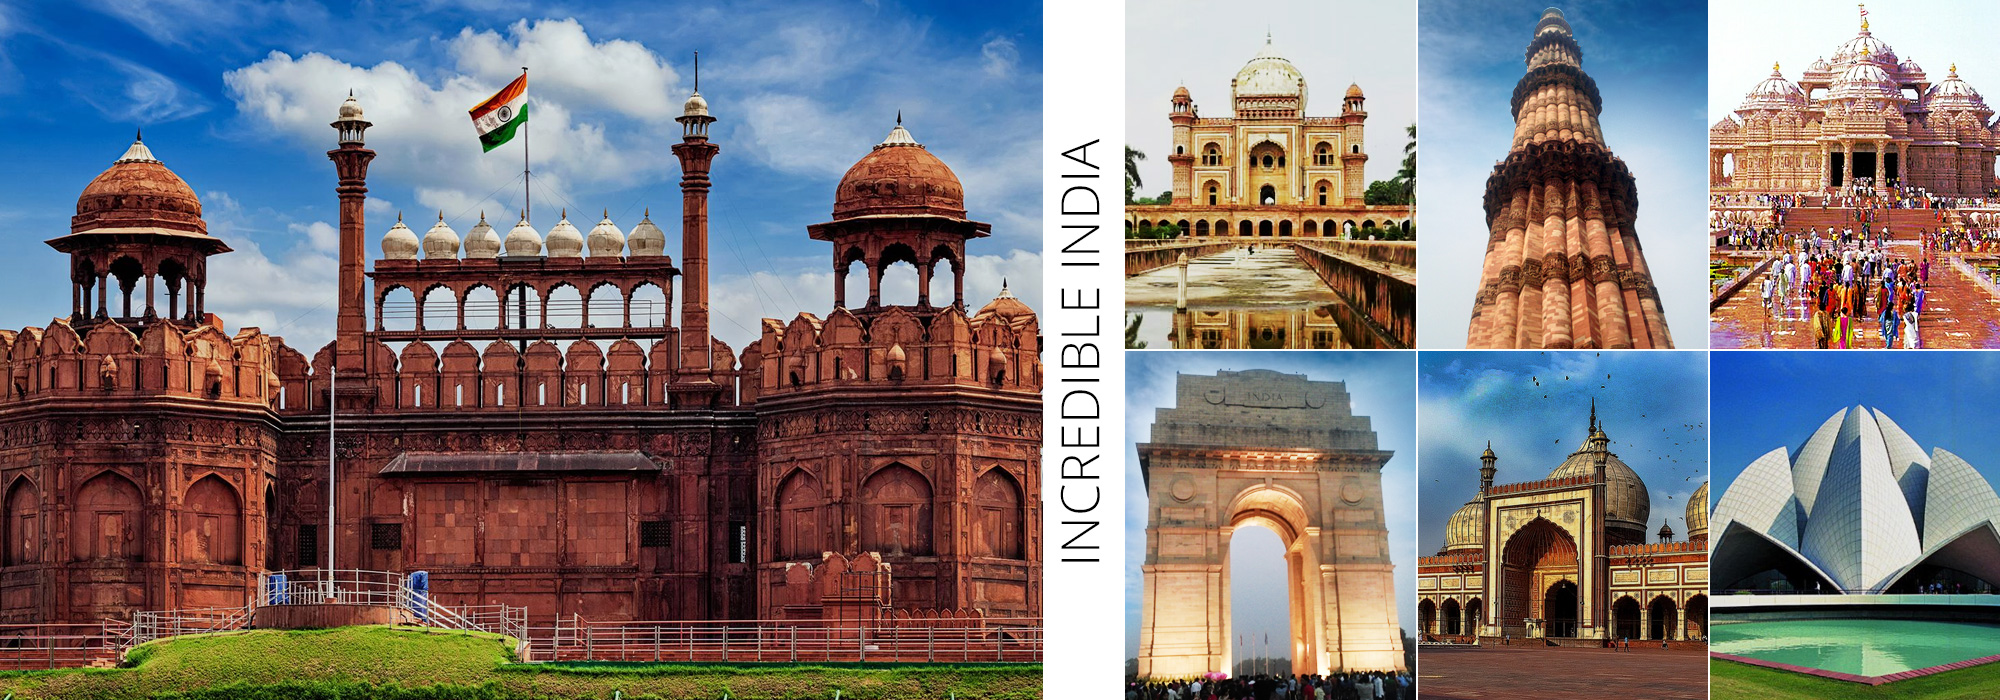 The Best Way To See New Delhi